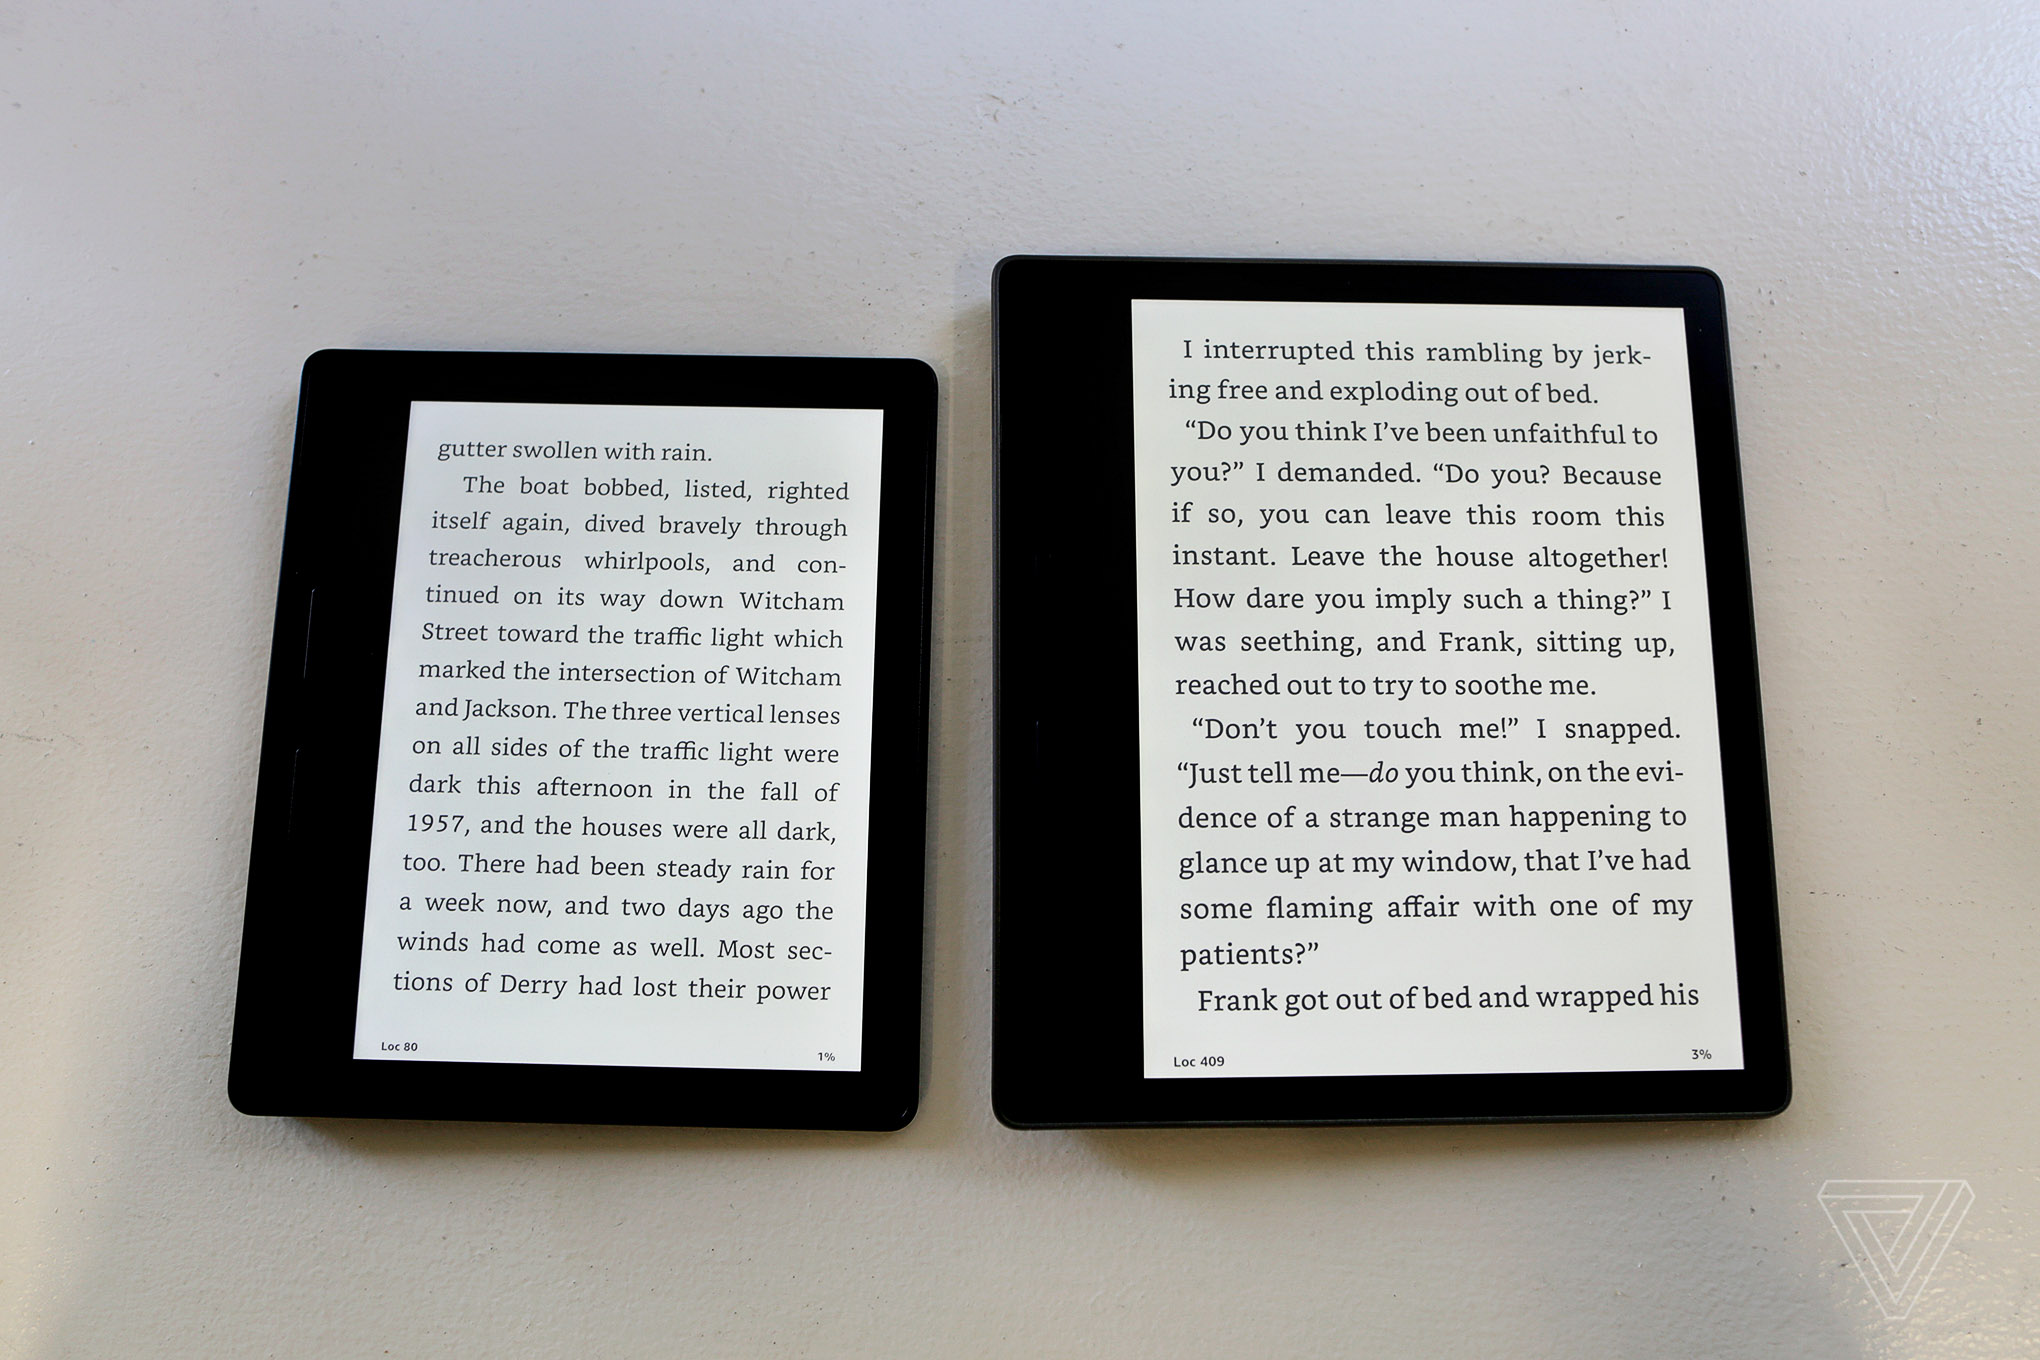 Amazon Announces Kindle Oasis Water-proof e-Reader